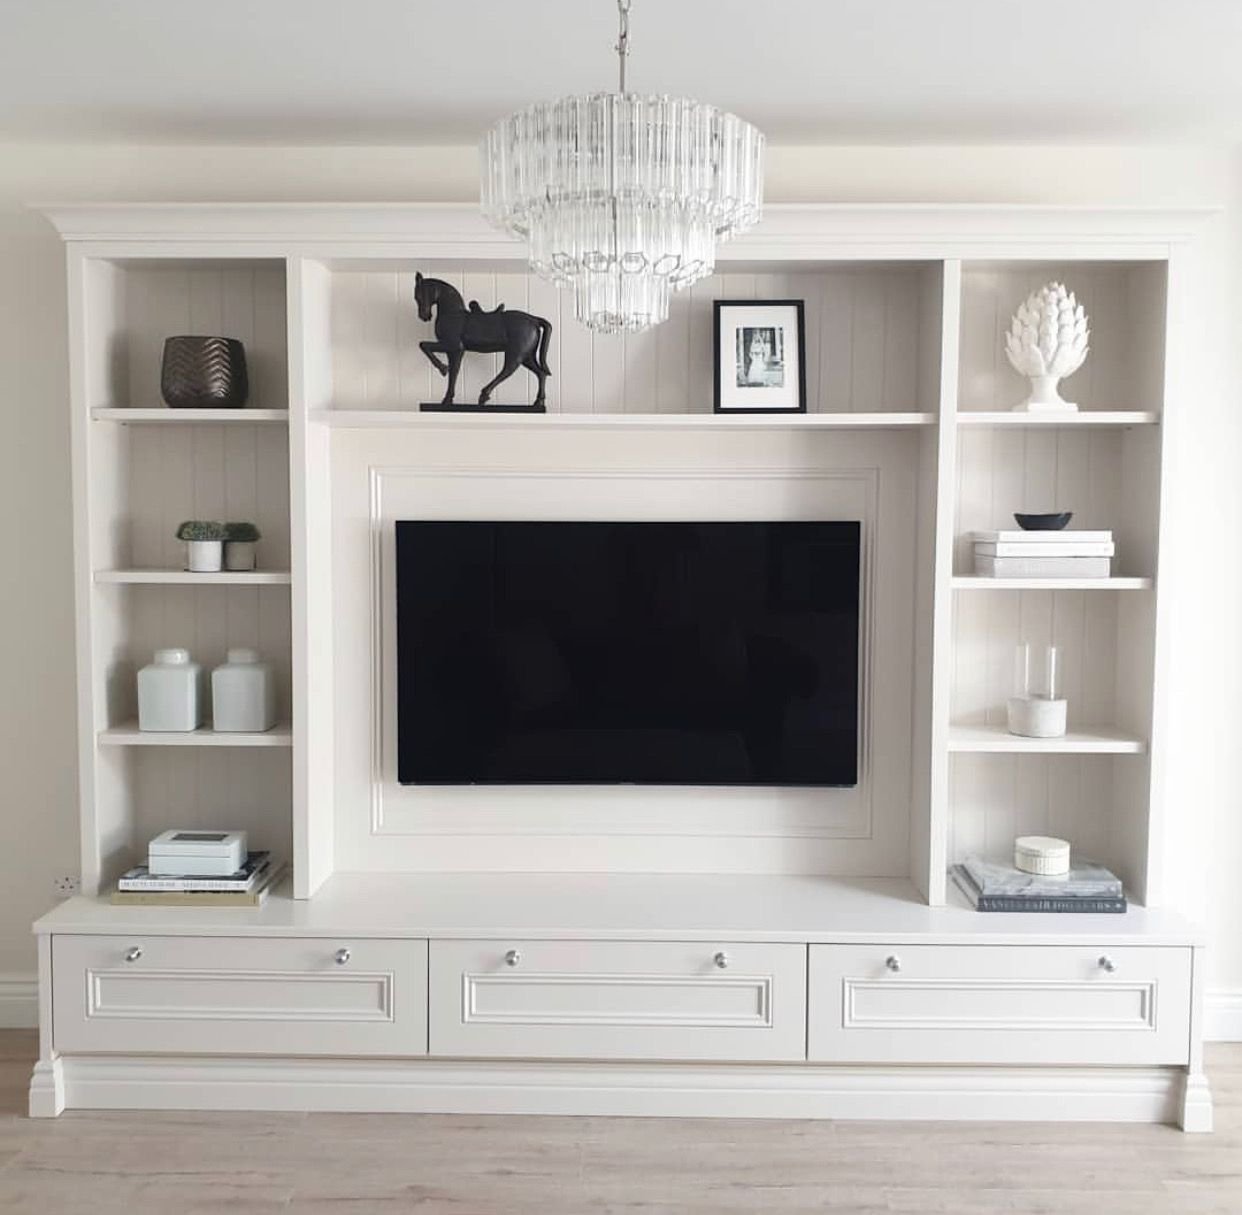 Pin By Zohra Aouad On Home Ideas Built In Shelves Living Room Living Room Built Ins Living Room Wall Units Living room built ins ideas